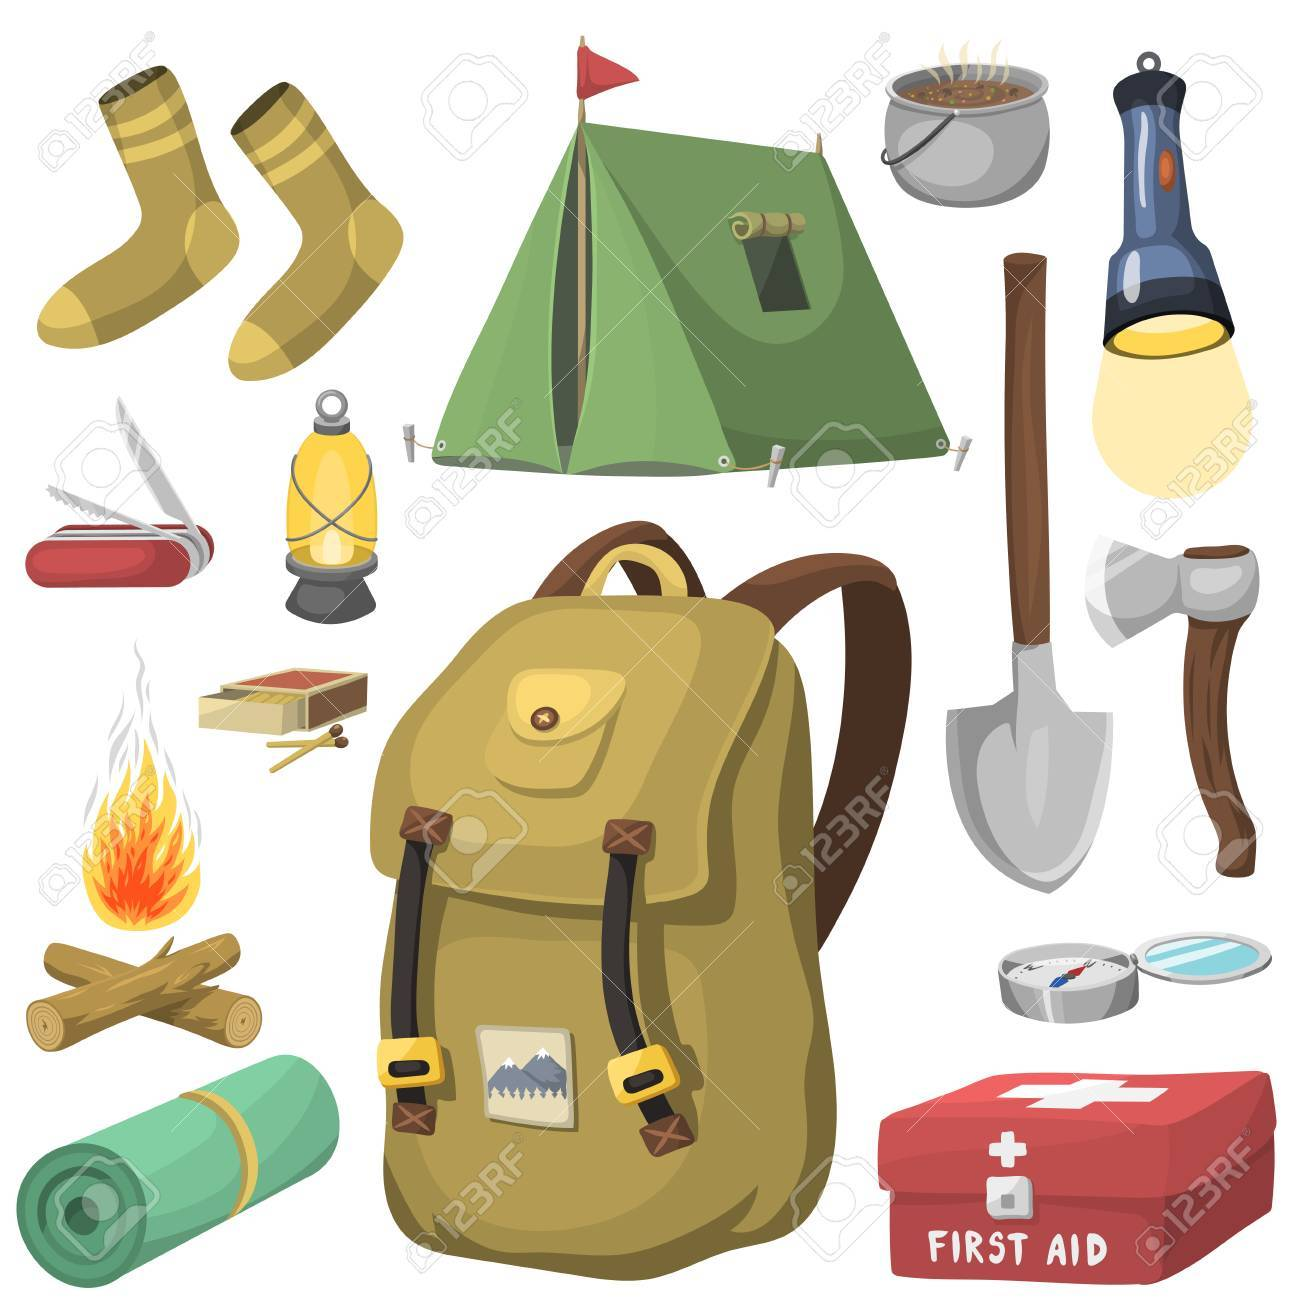 Hiking camping equipment base camp gear and accessories outdoor.